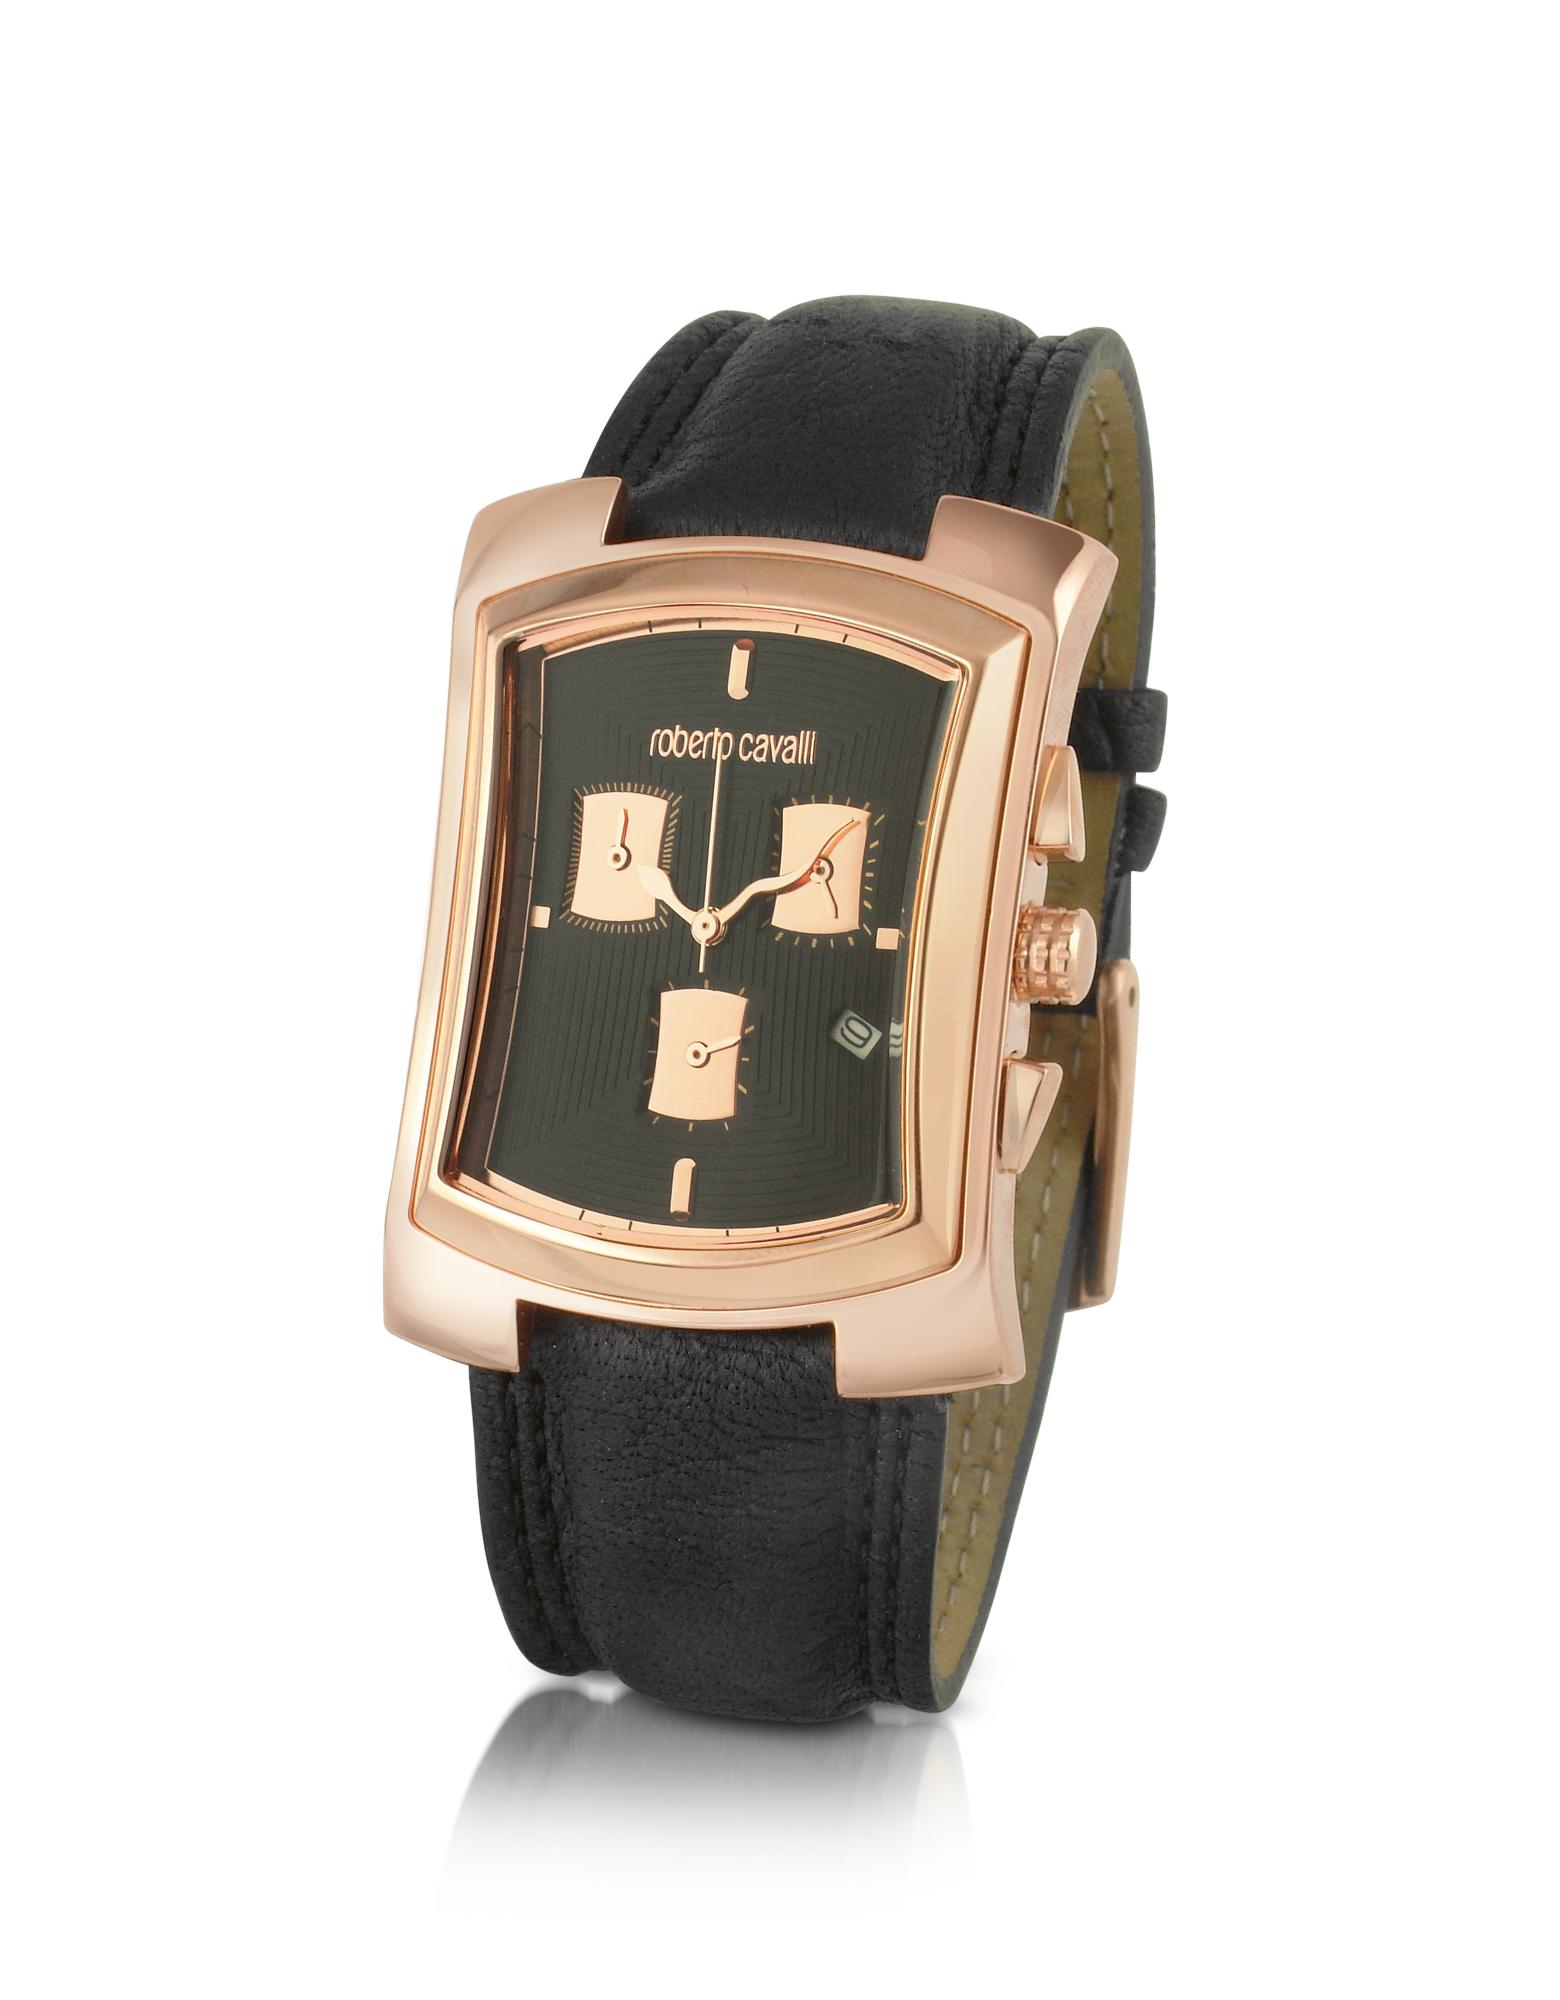 Roberto Cavalli  Tomahawk - Rose Gold Plated and Leather Chronograph Watch